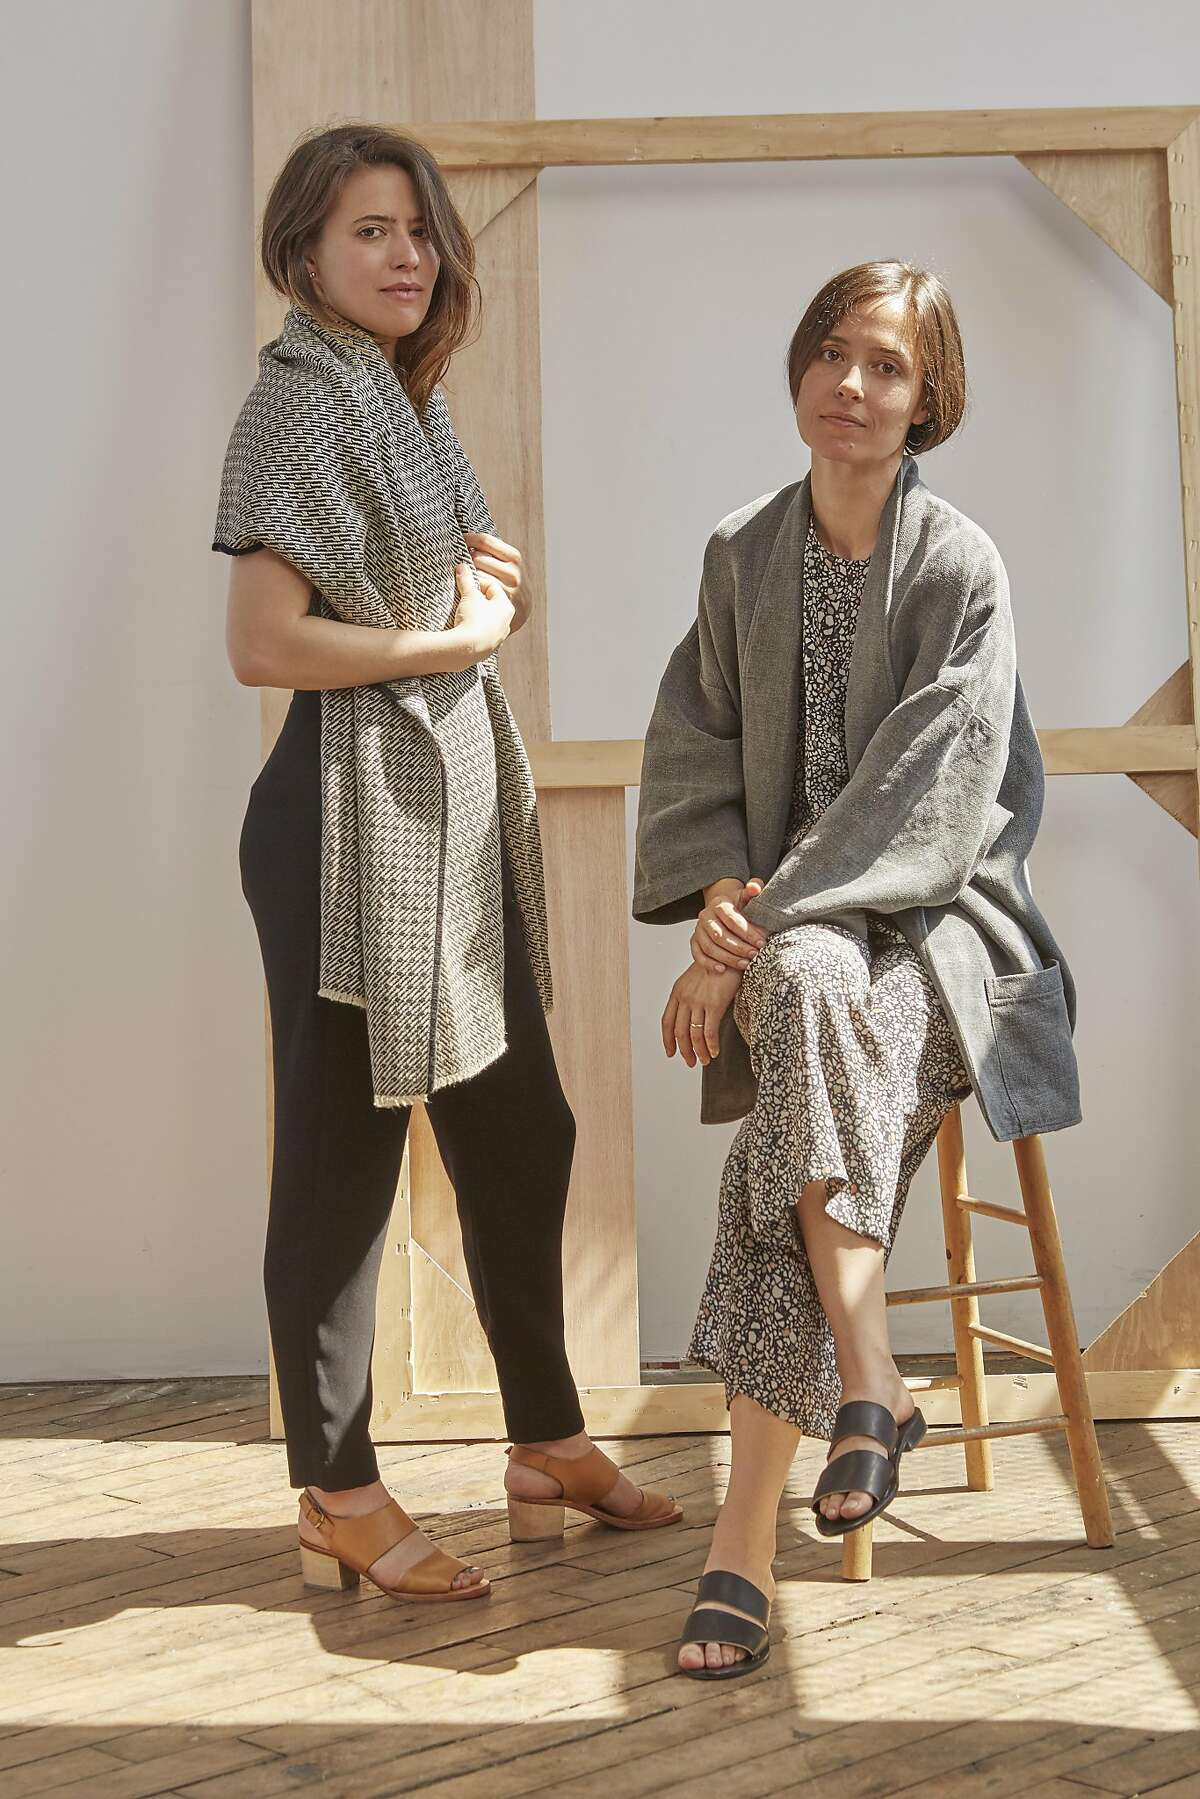 Mariah Nielson (left) and Fanny Singer are launching Permanent Collection, a lifestyle brand, this September. Permanent Collection's meticulously crafted clothing, accessories and design objects are inspired by past creations, unified by a restrained palette and classic shapes.